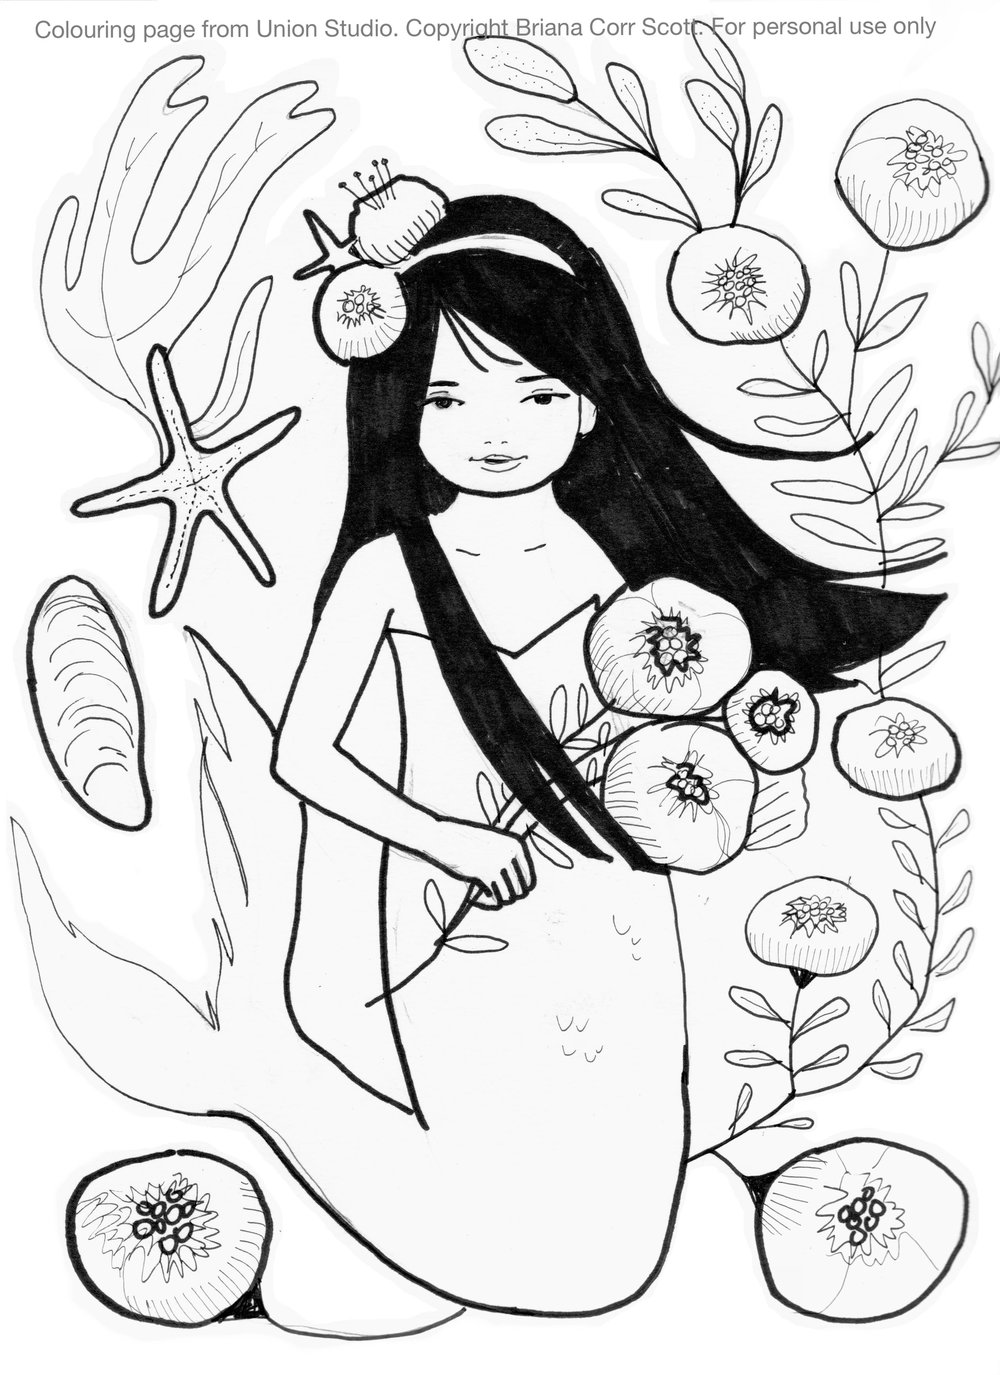 """""""Mermaid with Flowers"""" Personal Use Only. Copyright Briana Corr Scott"""